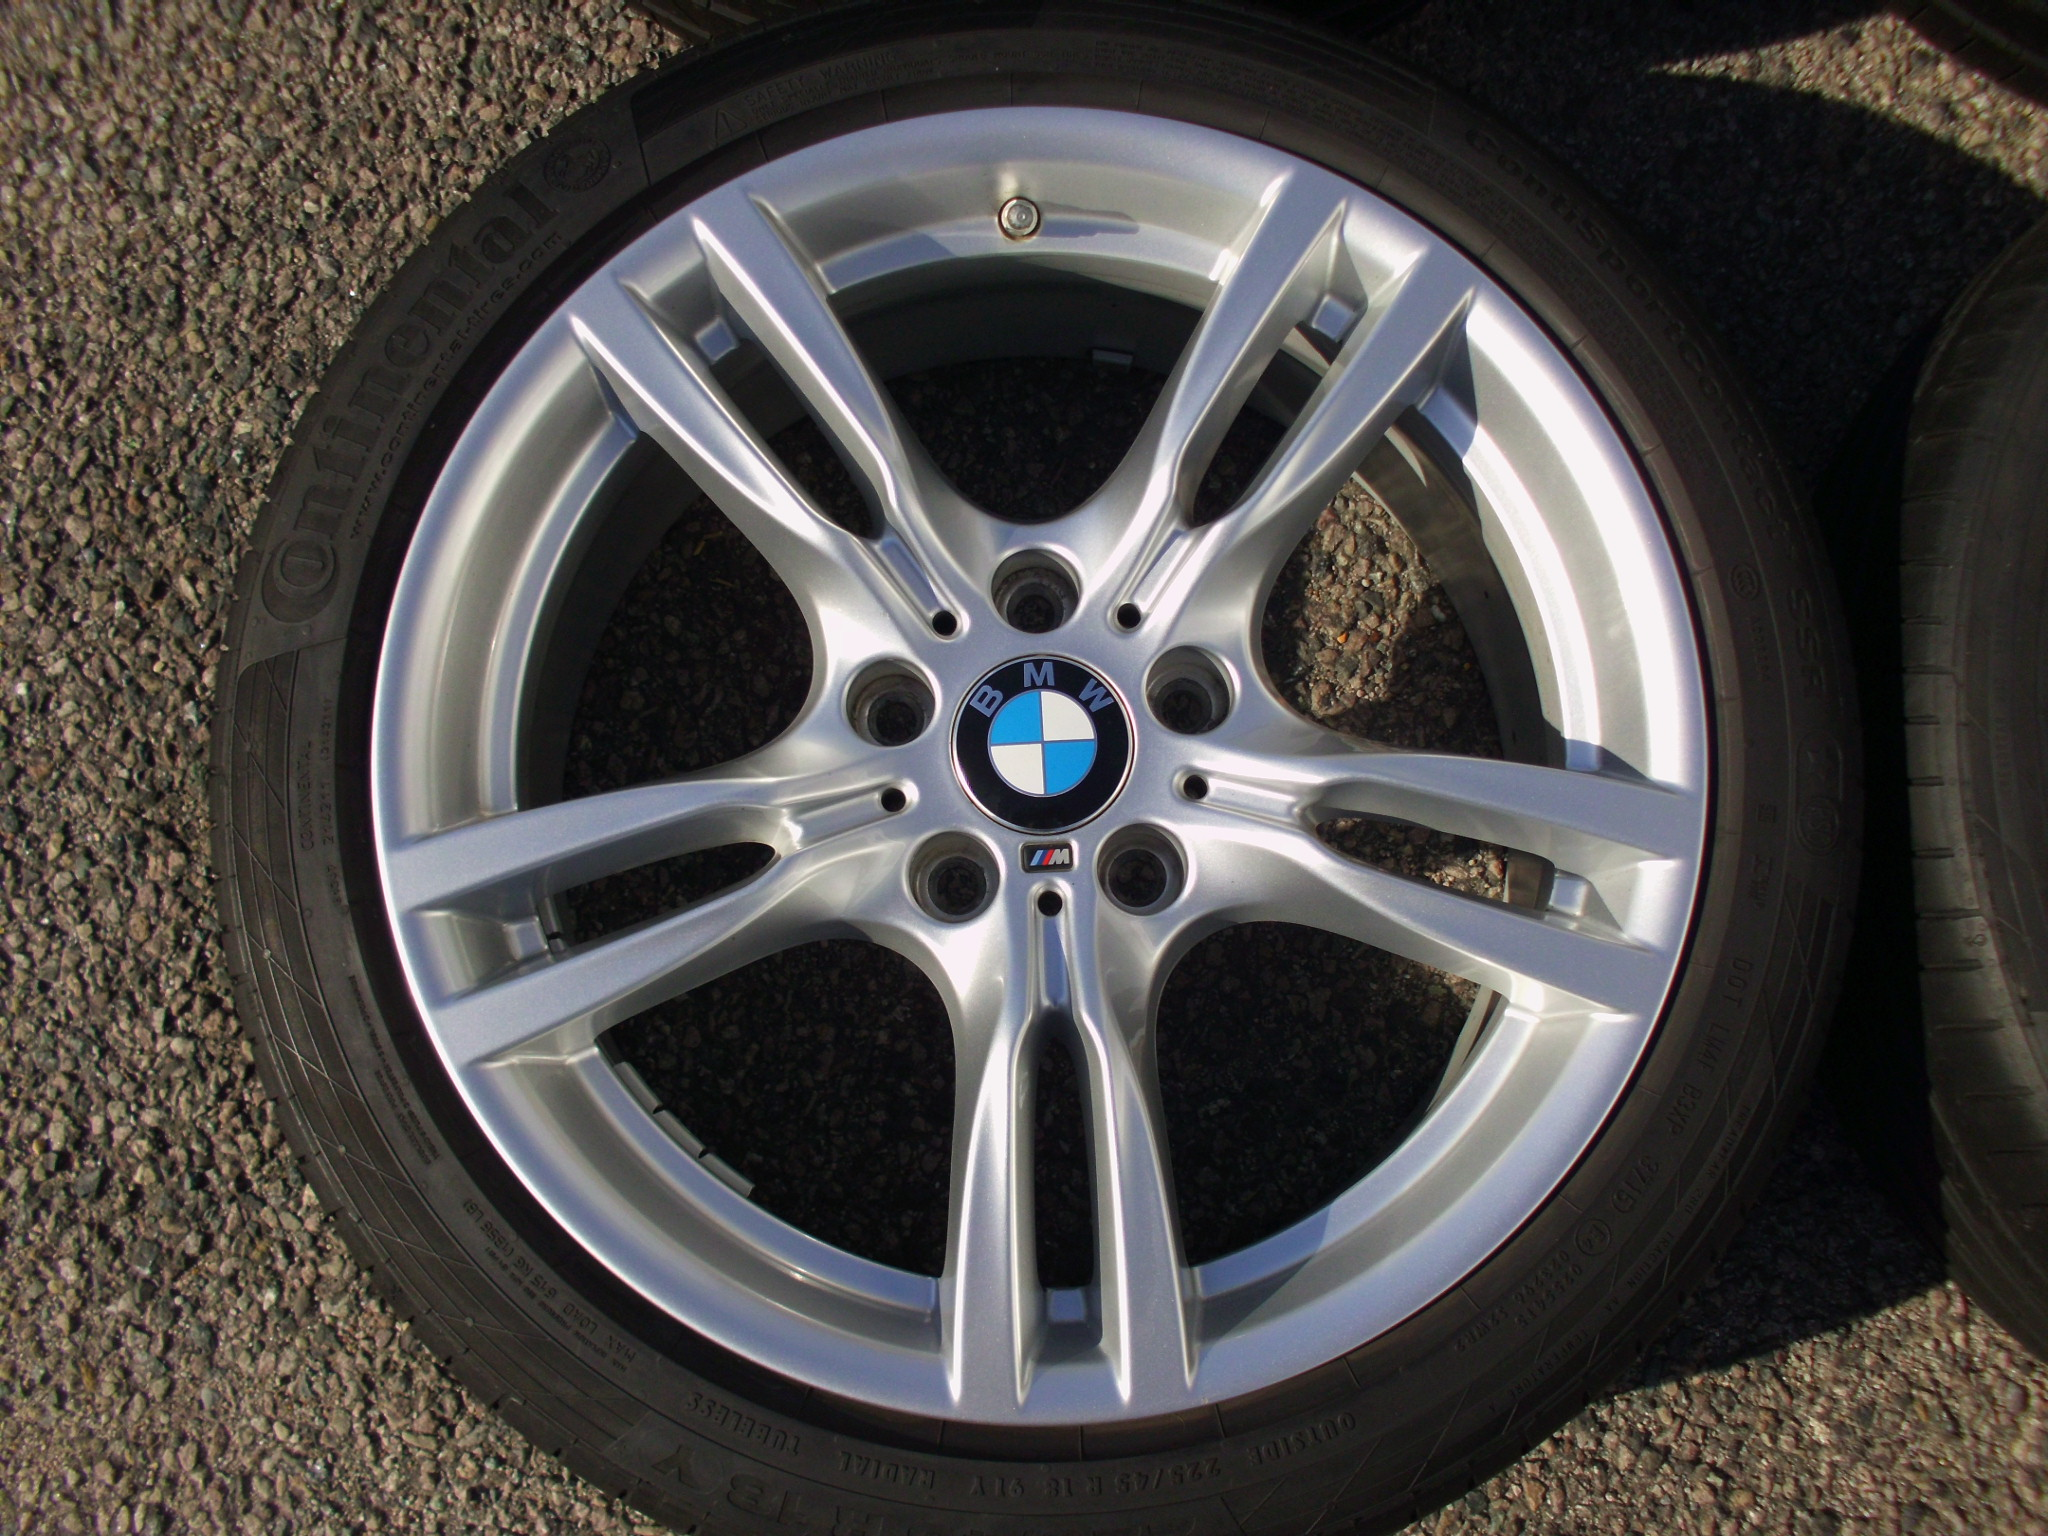 "USED 18"" GENUINE STYLE 400 M SPORT ALLOYS,WIDER REARS,VGC, INC VG CONTINENTAL RUNFLAT TYRES + TPMS"